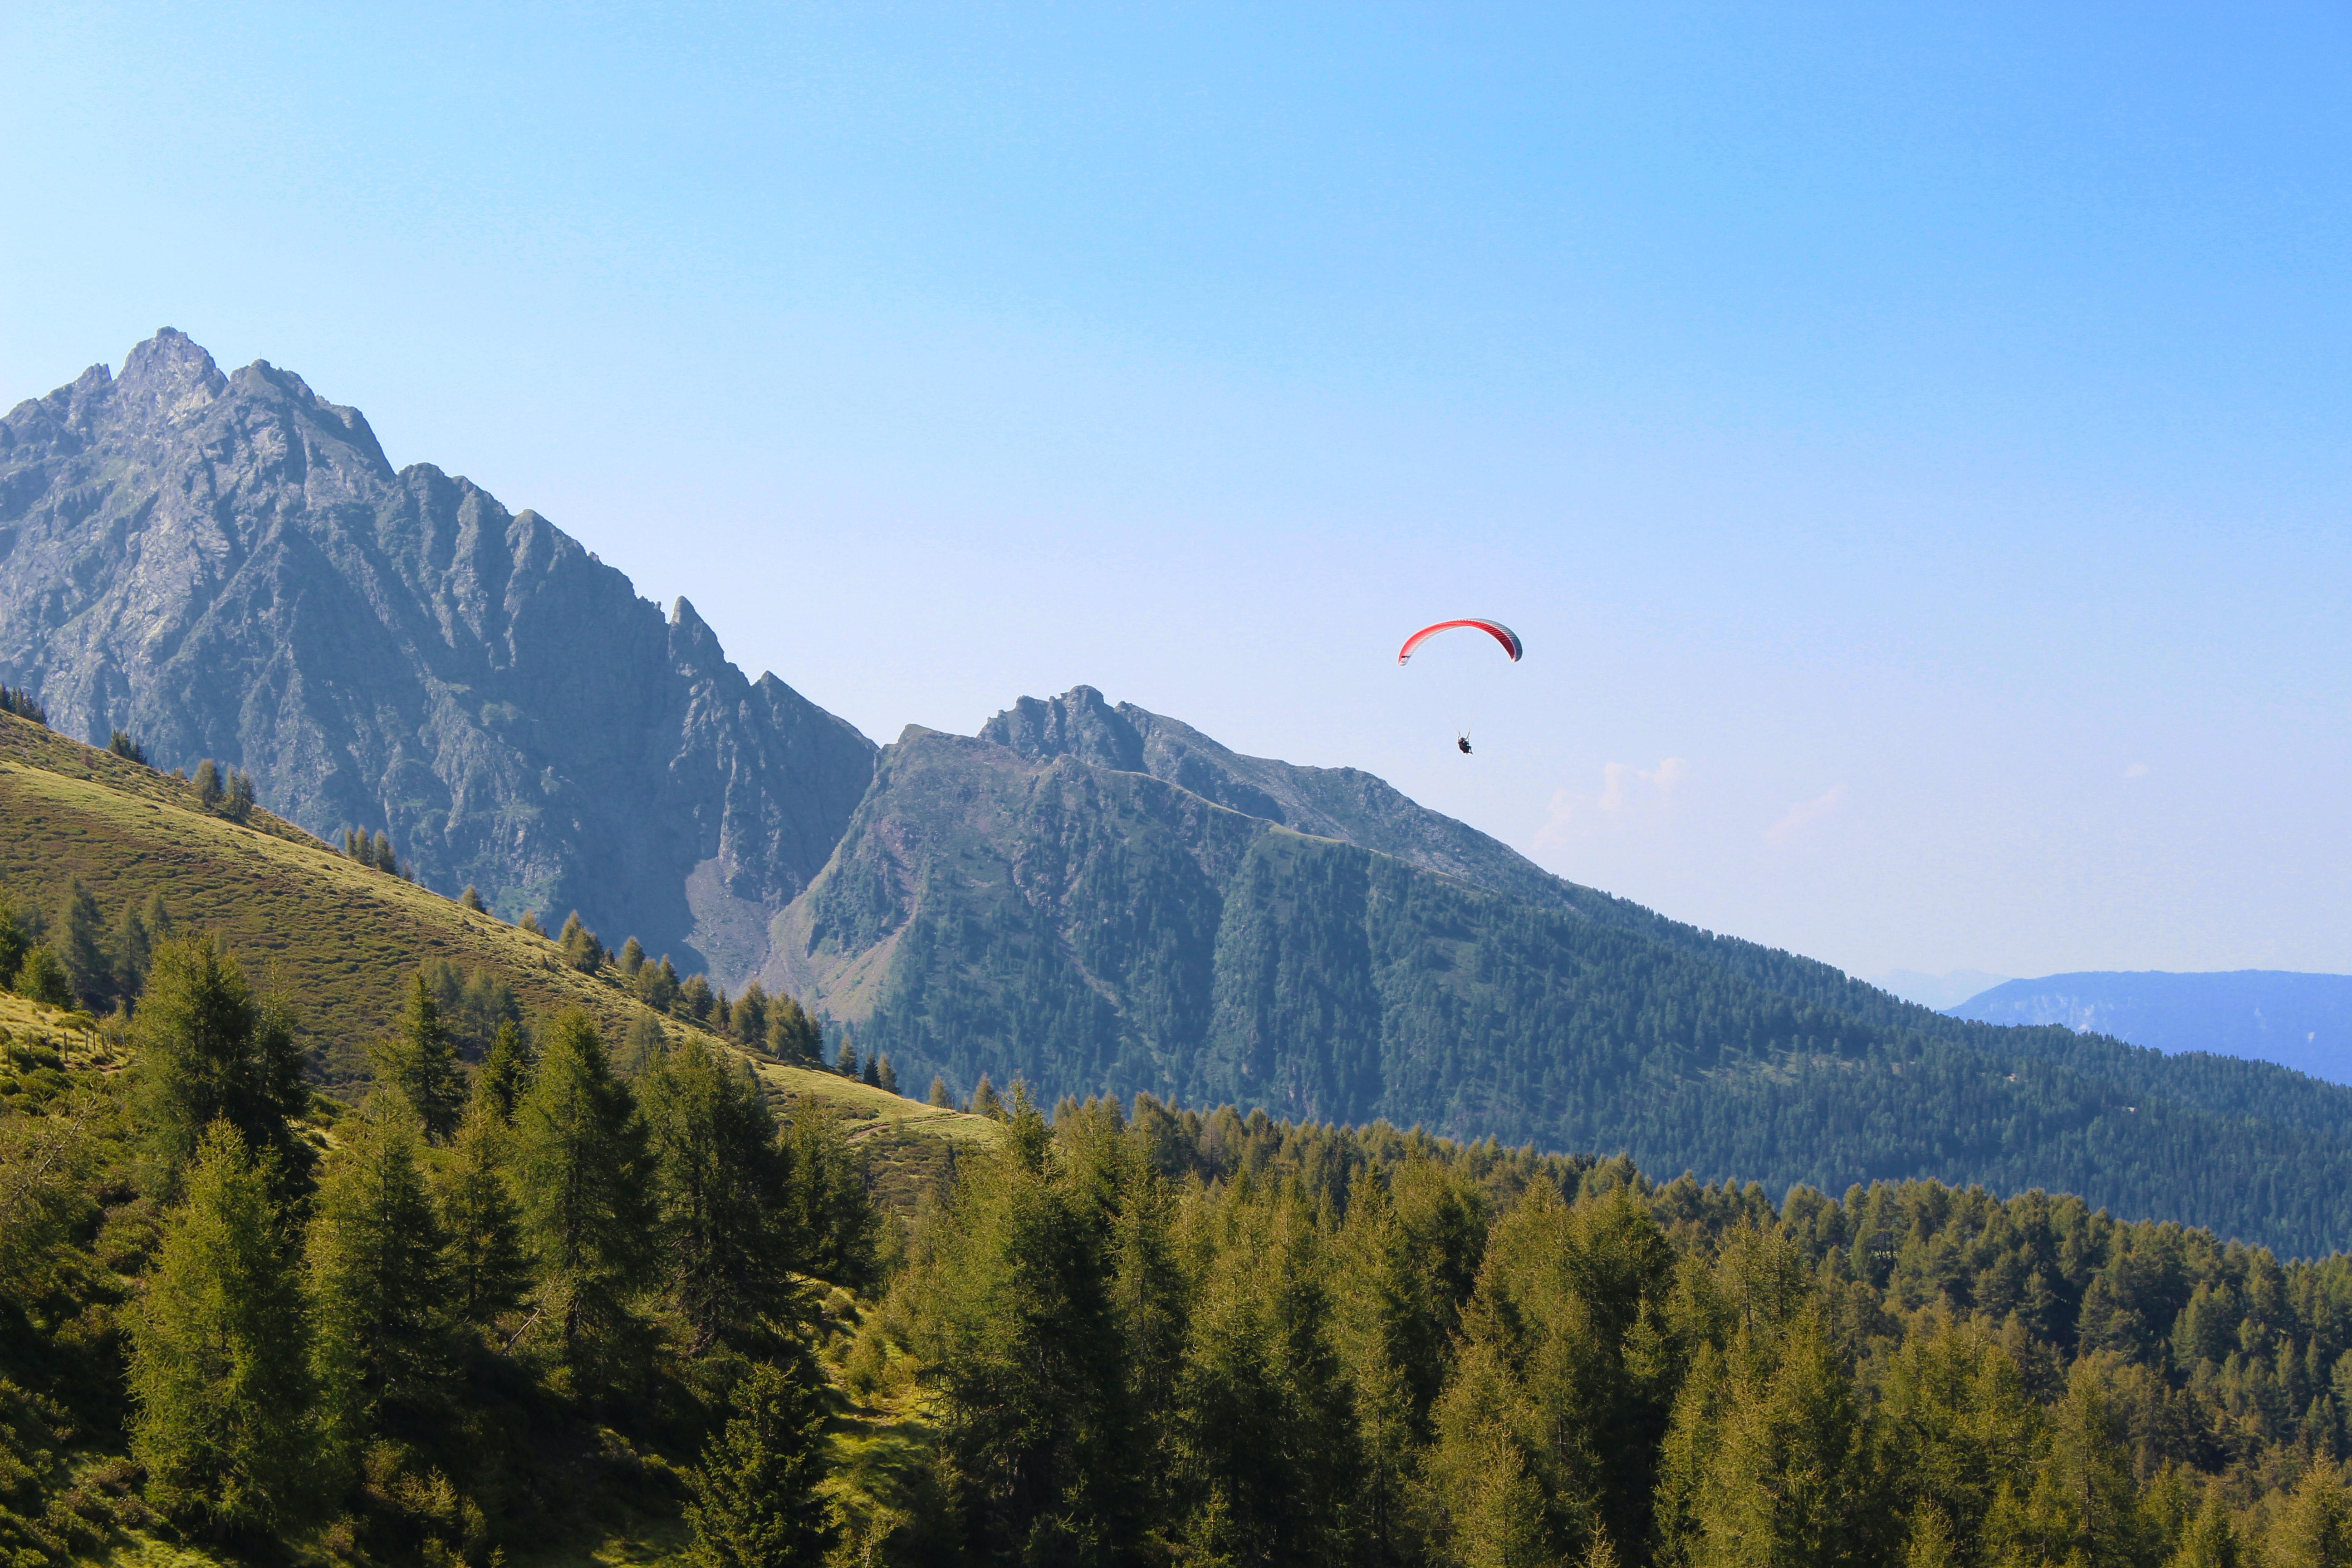 A paraglider in the air over mountains in Italy